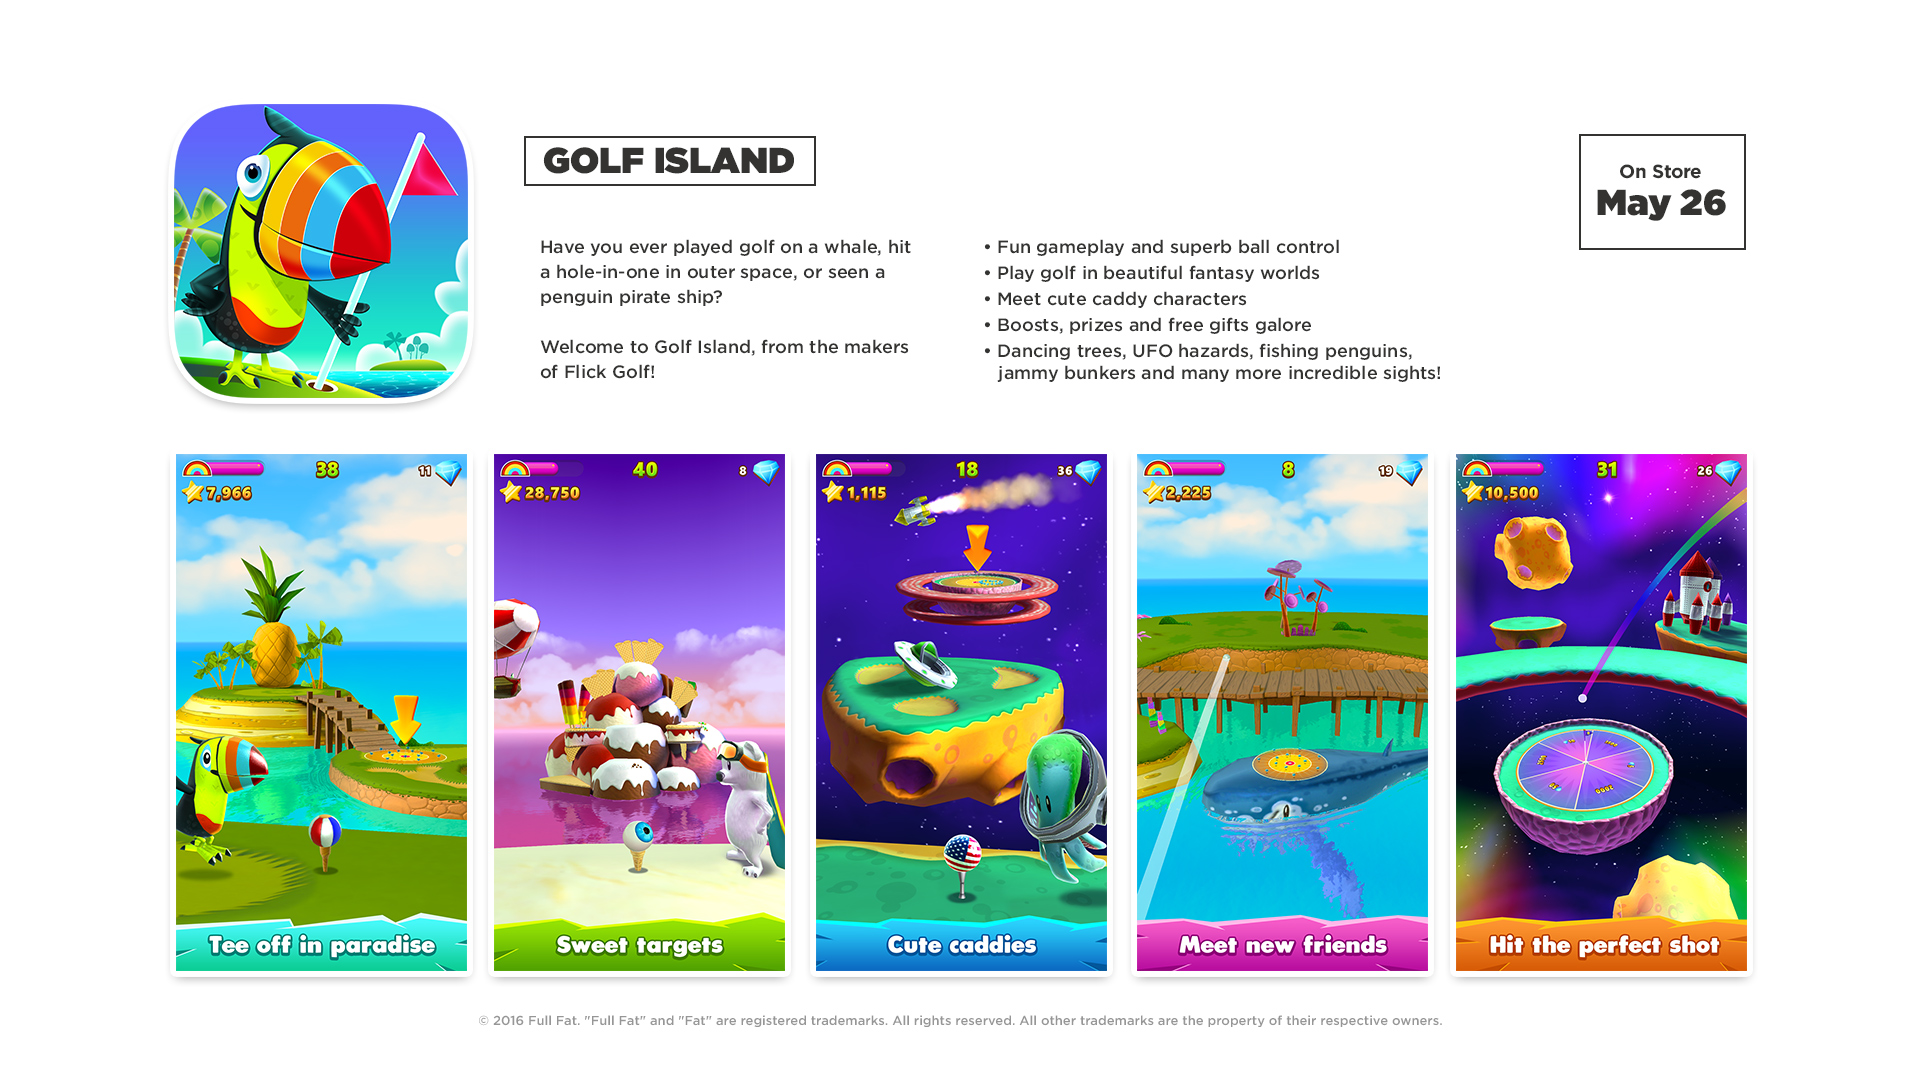 Full Fat releases Golf Island v1.0 - A Surreal Fun Packed Golf Game Image